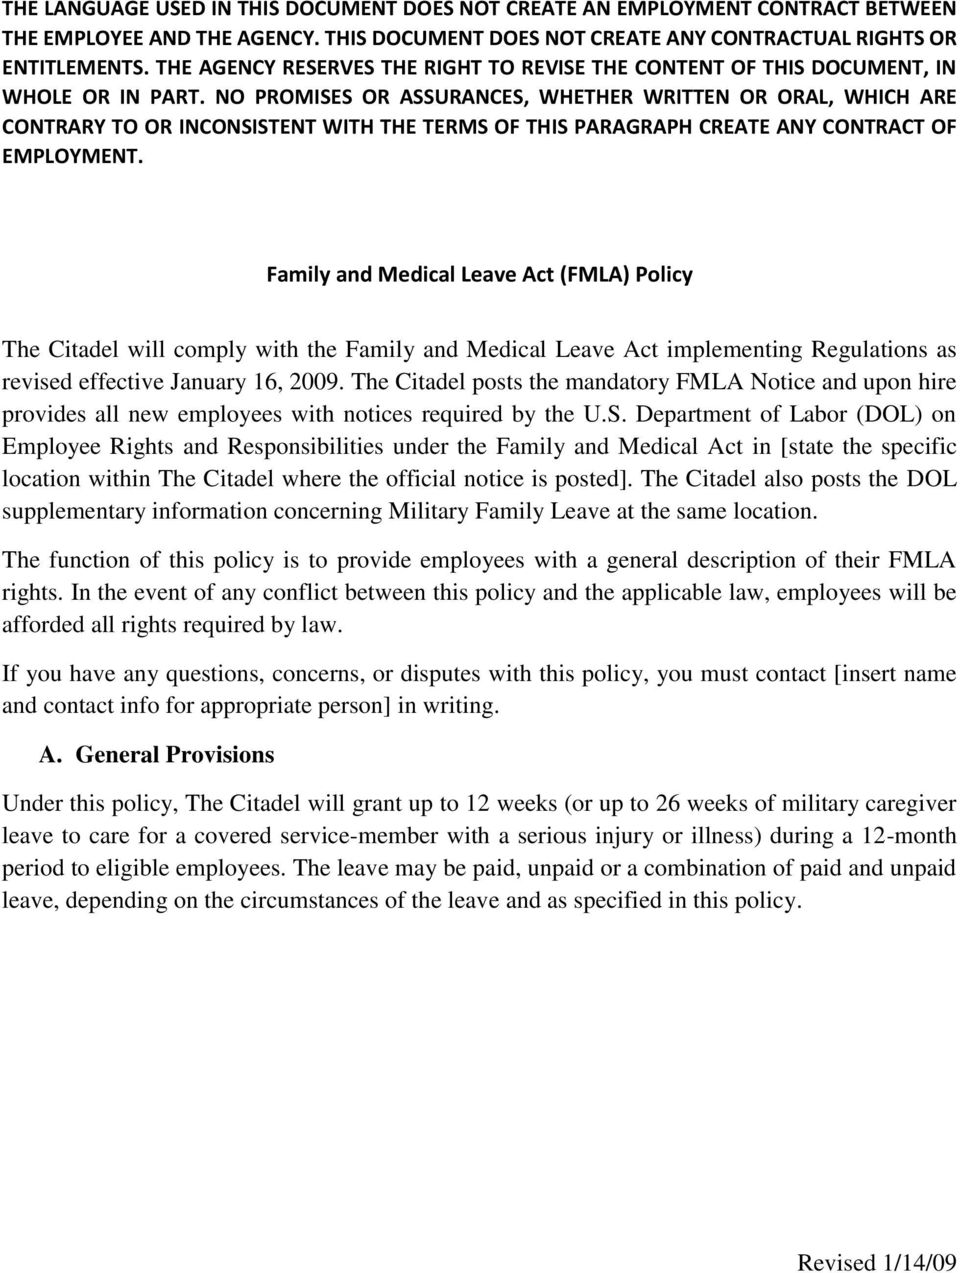 comply with the Family and Medical Leave Act implementing Regulations as revised effective January 16, 2009.